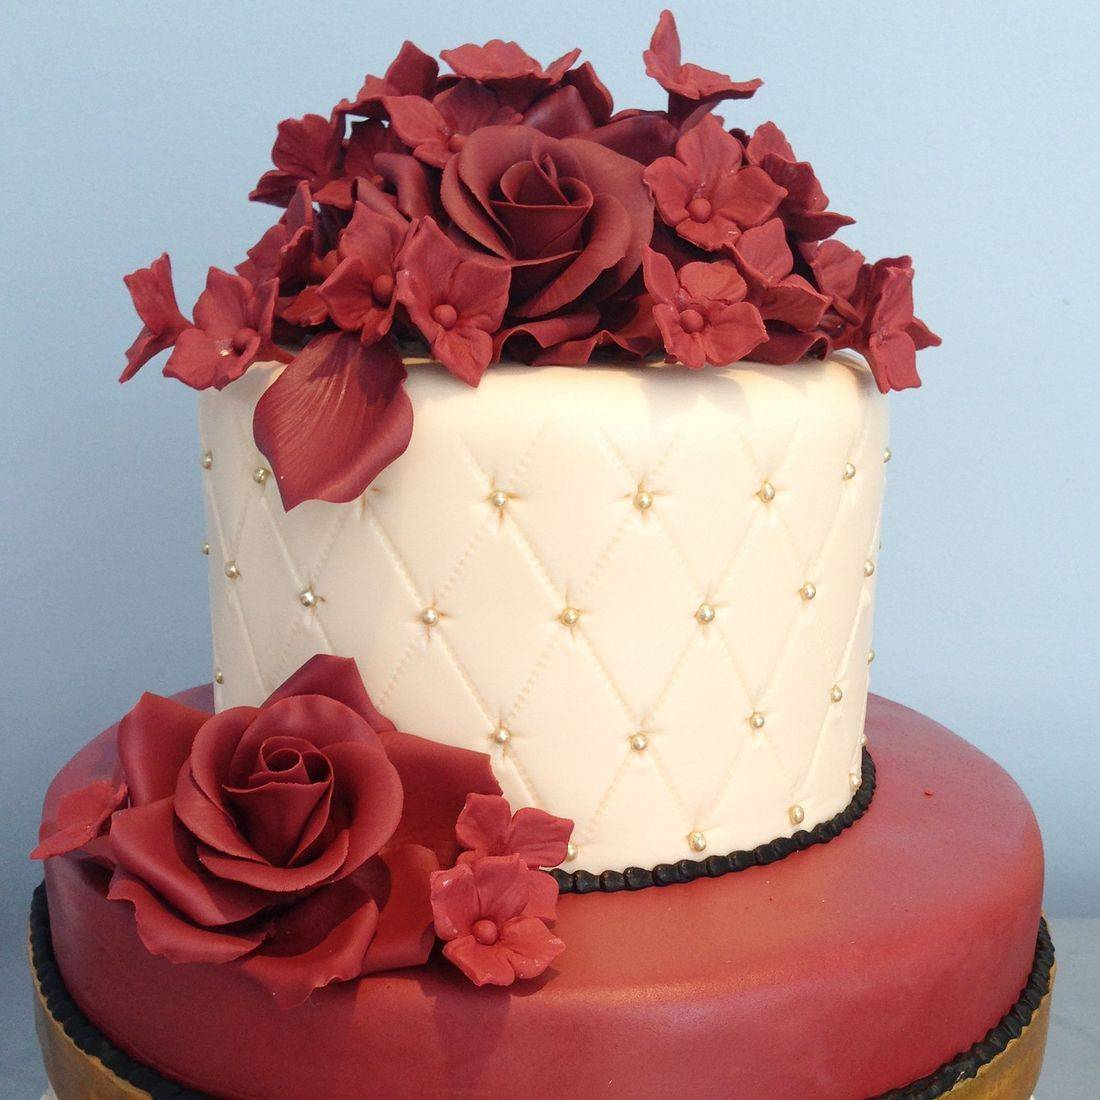 Custom Burgundy Rose Cheetah Print Tufted Cake  Milwaukee